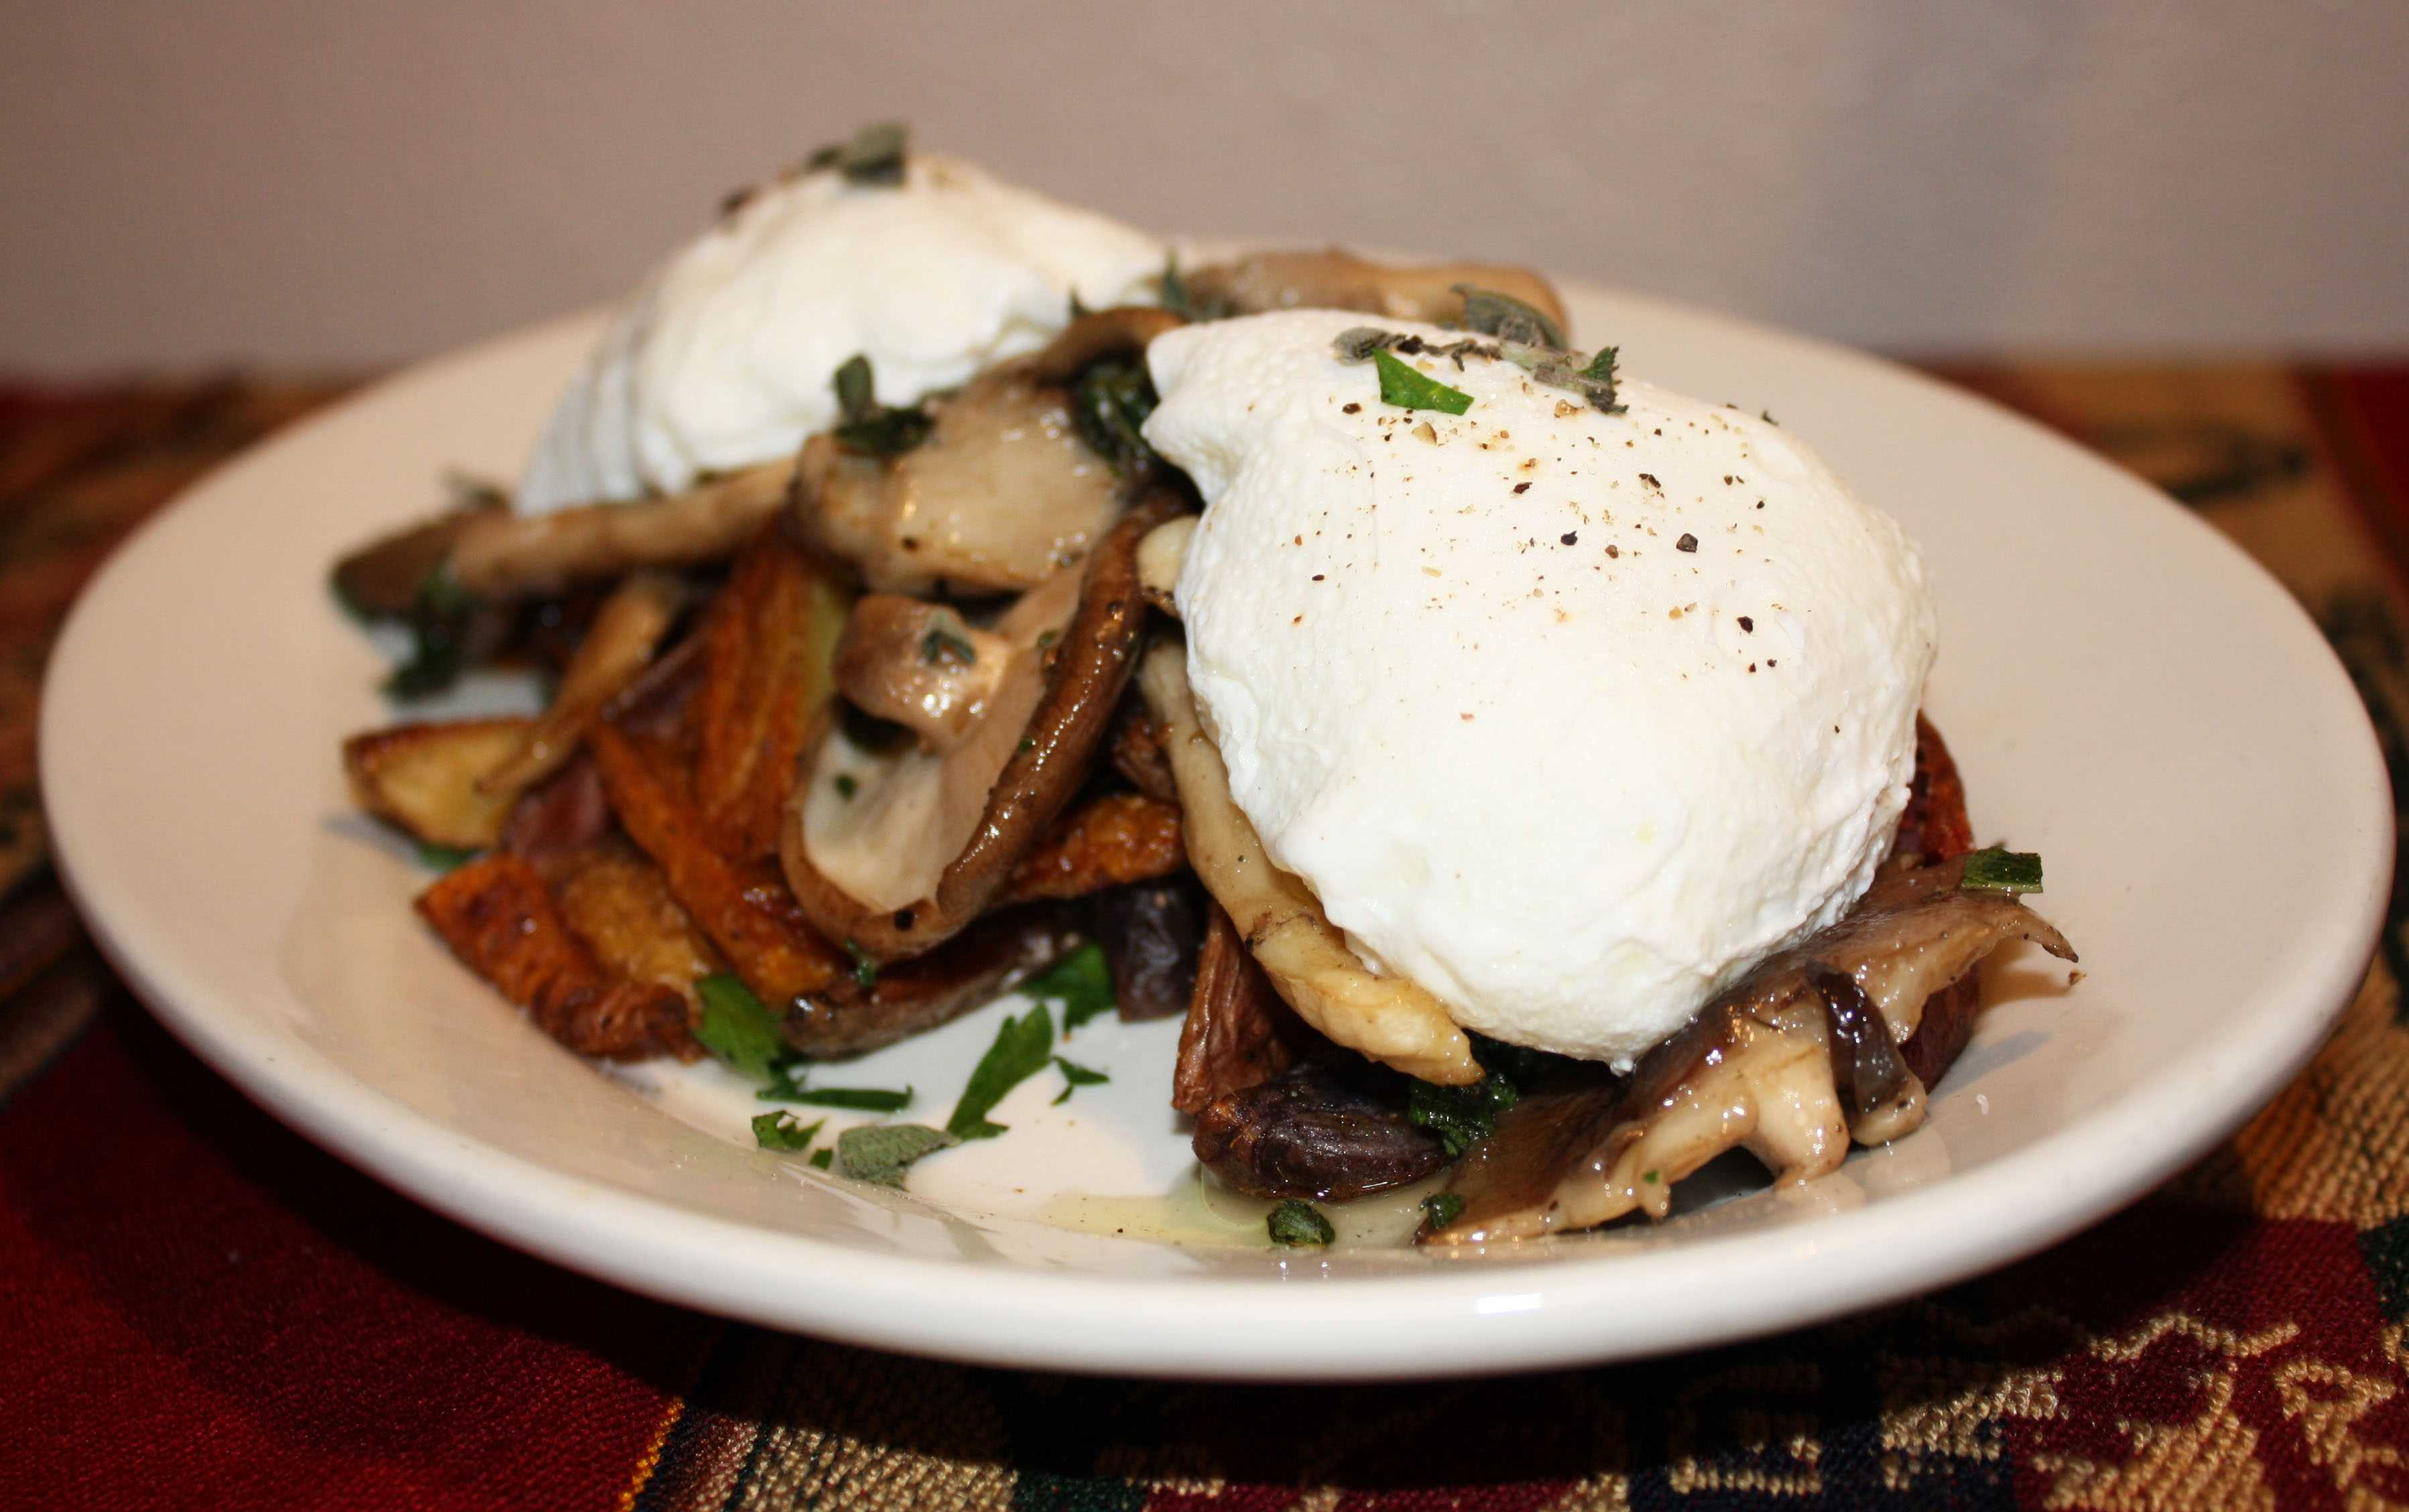 The smoky flavor of shiitake mushrooms and velvety oyster mushrooms make for a delicious and unique breakfast when paired with poached eggs. Photo Credit: Lauren J. Mapp/The Mesa Press